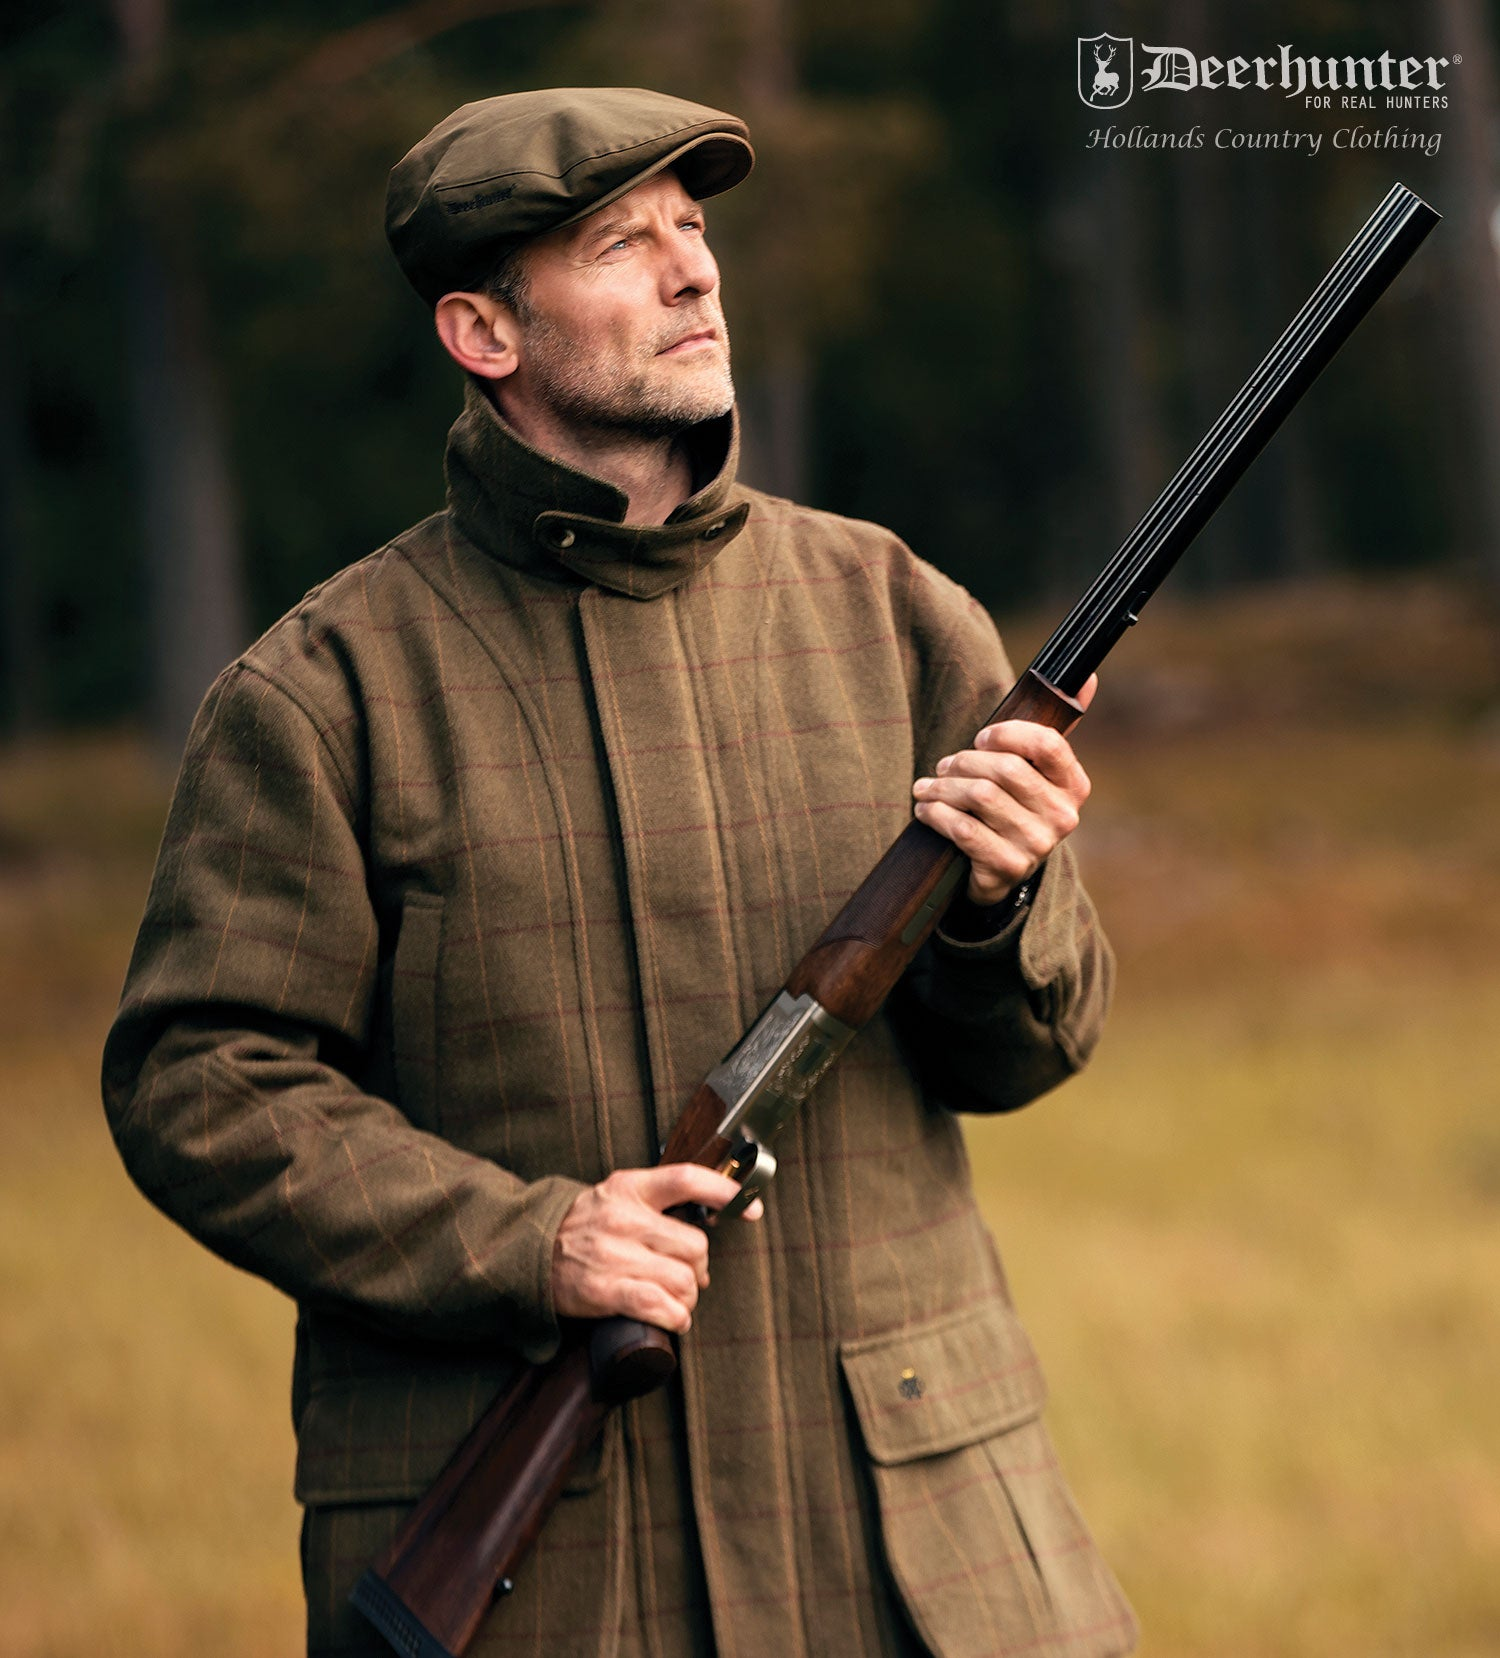 Deerhunter Woodland Mosstone Tweed Shooting Jacket is a classic tweed game shooting style